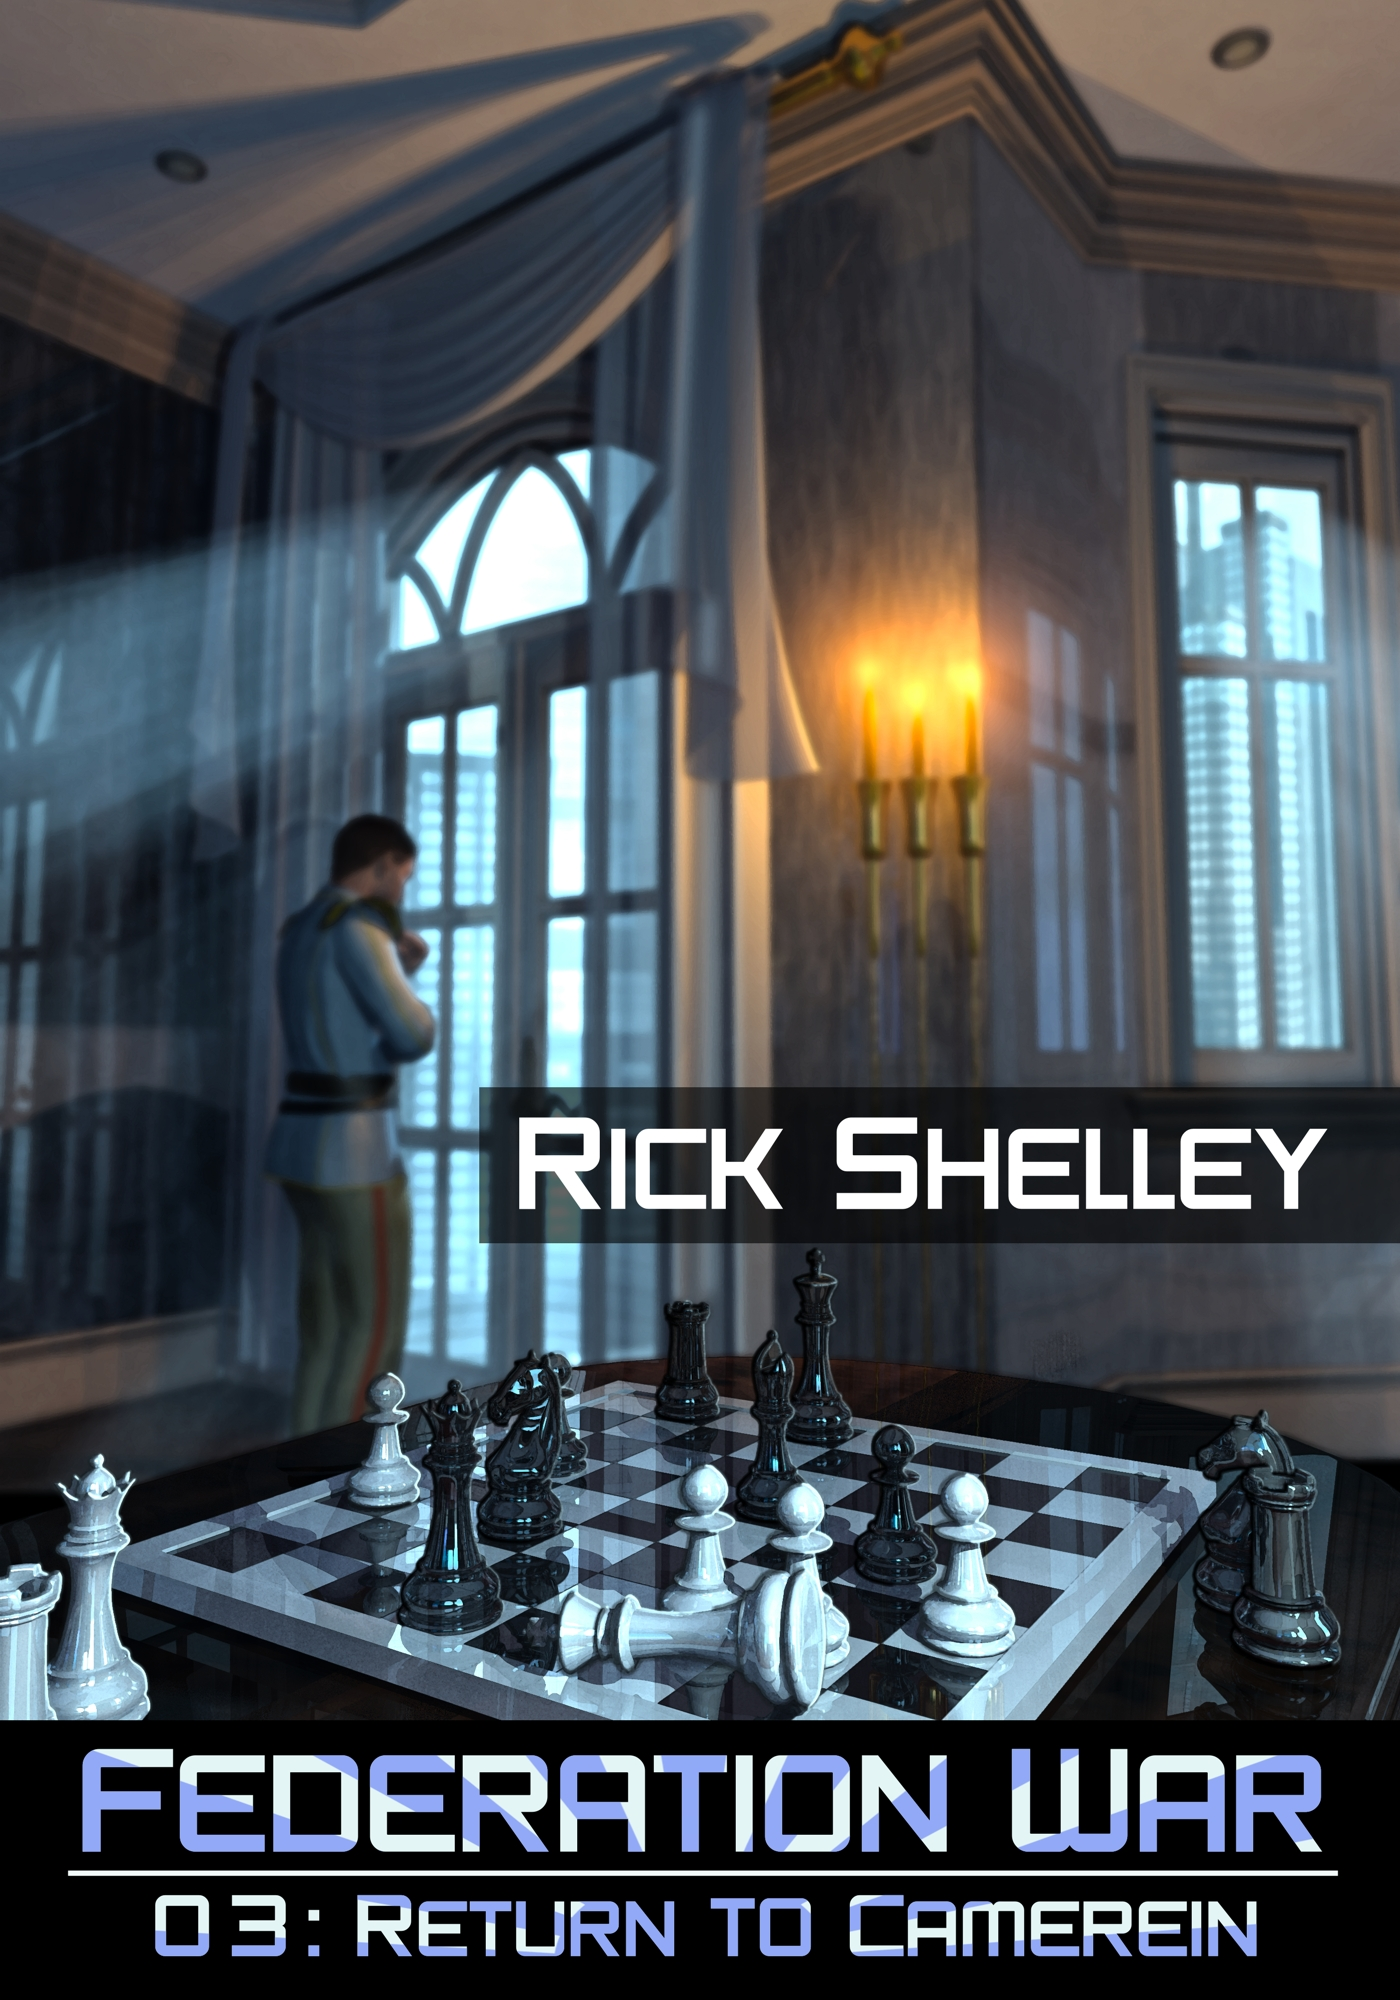 Return to Camerein by Rick Shelley